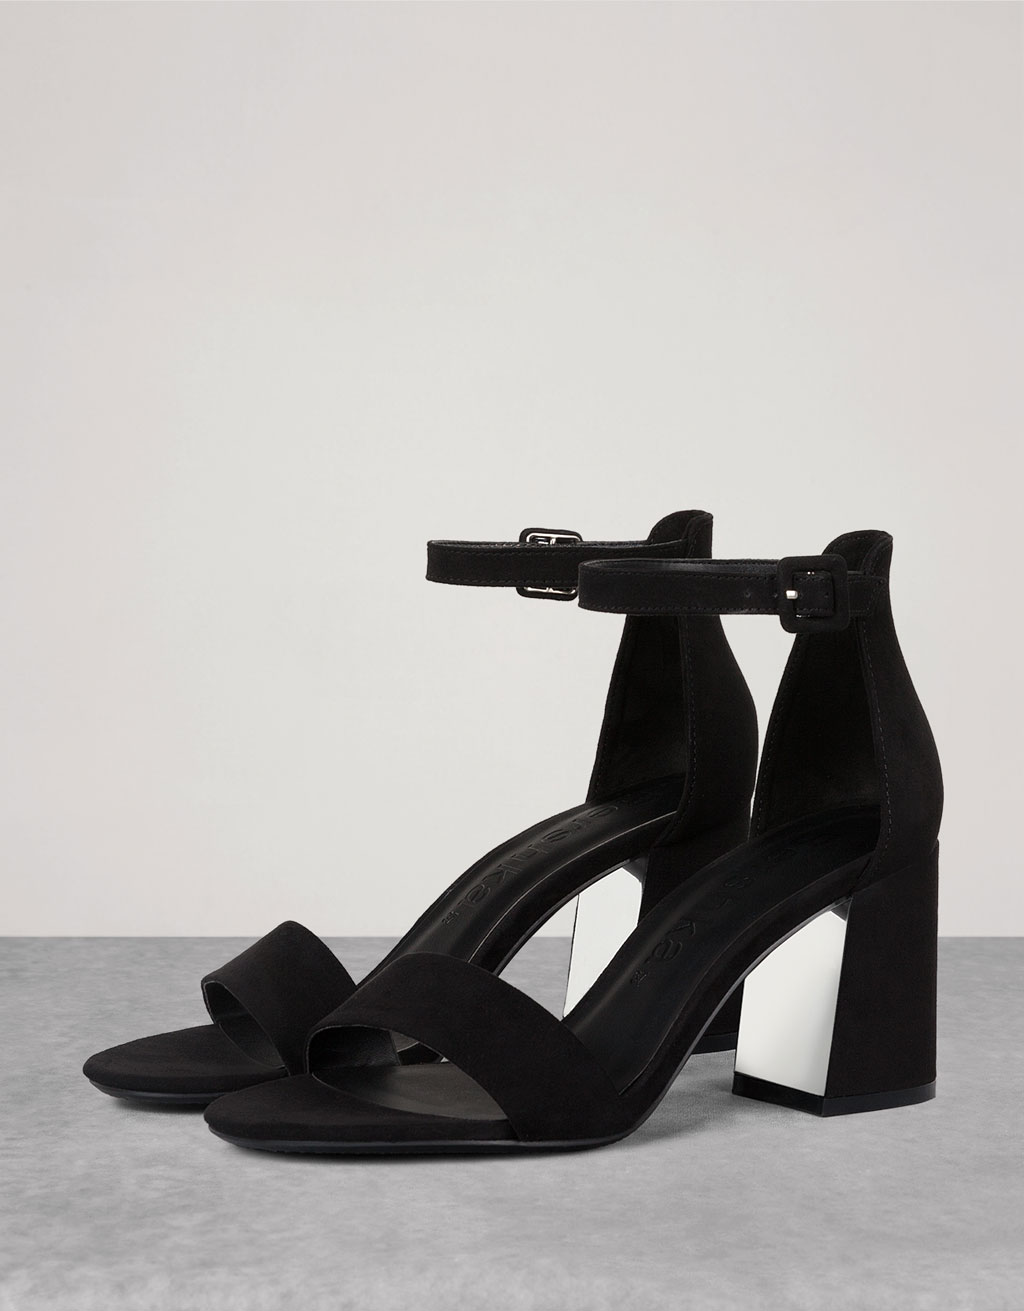 Strappy heeled sandals with ankle strap